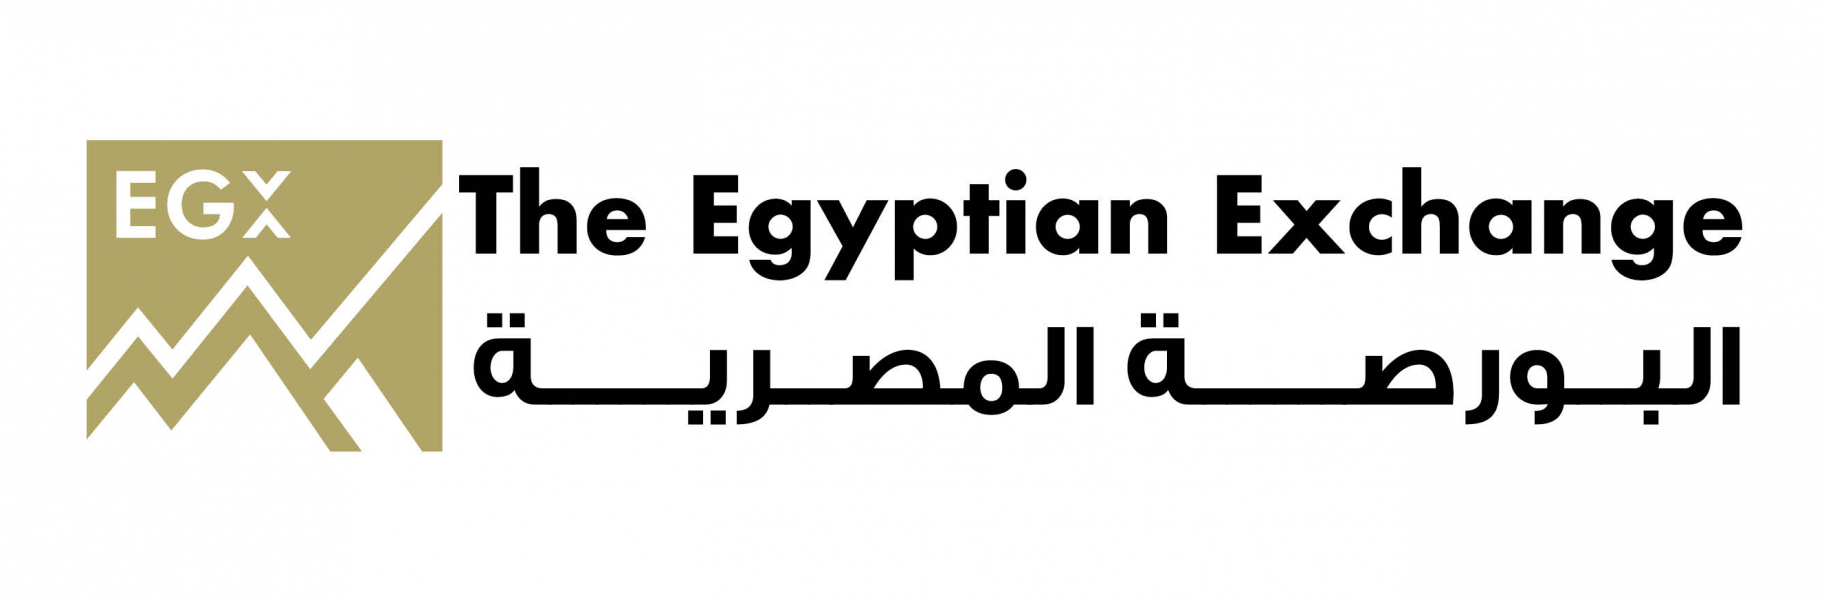 The-Egyptian-Exchange-Joins-as-Founding-Member-of